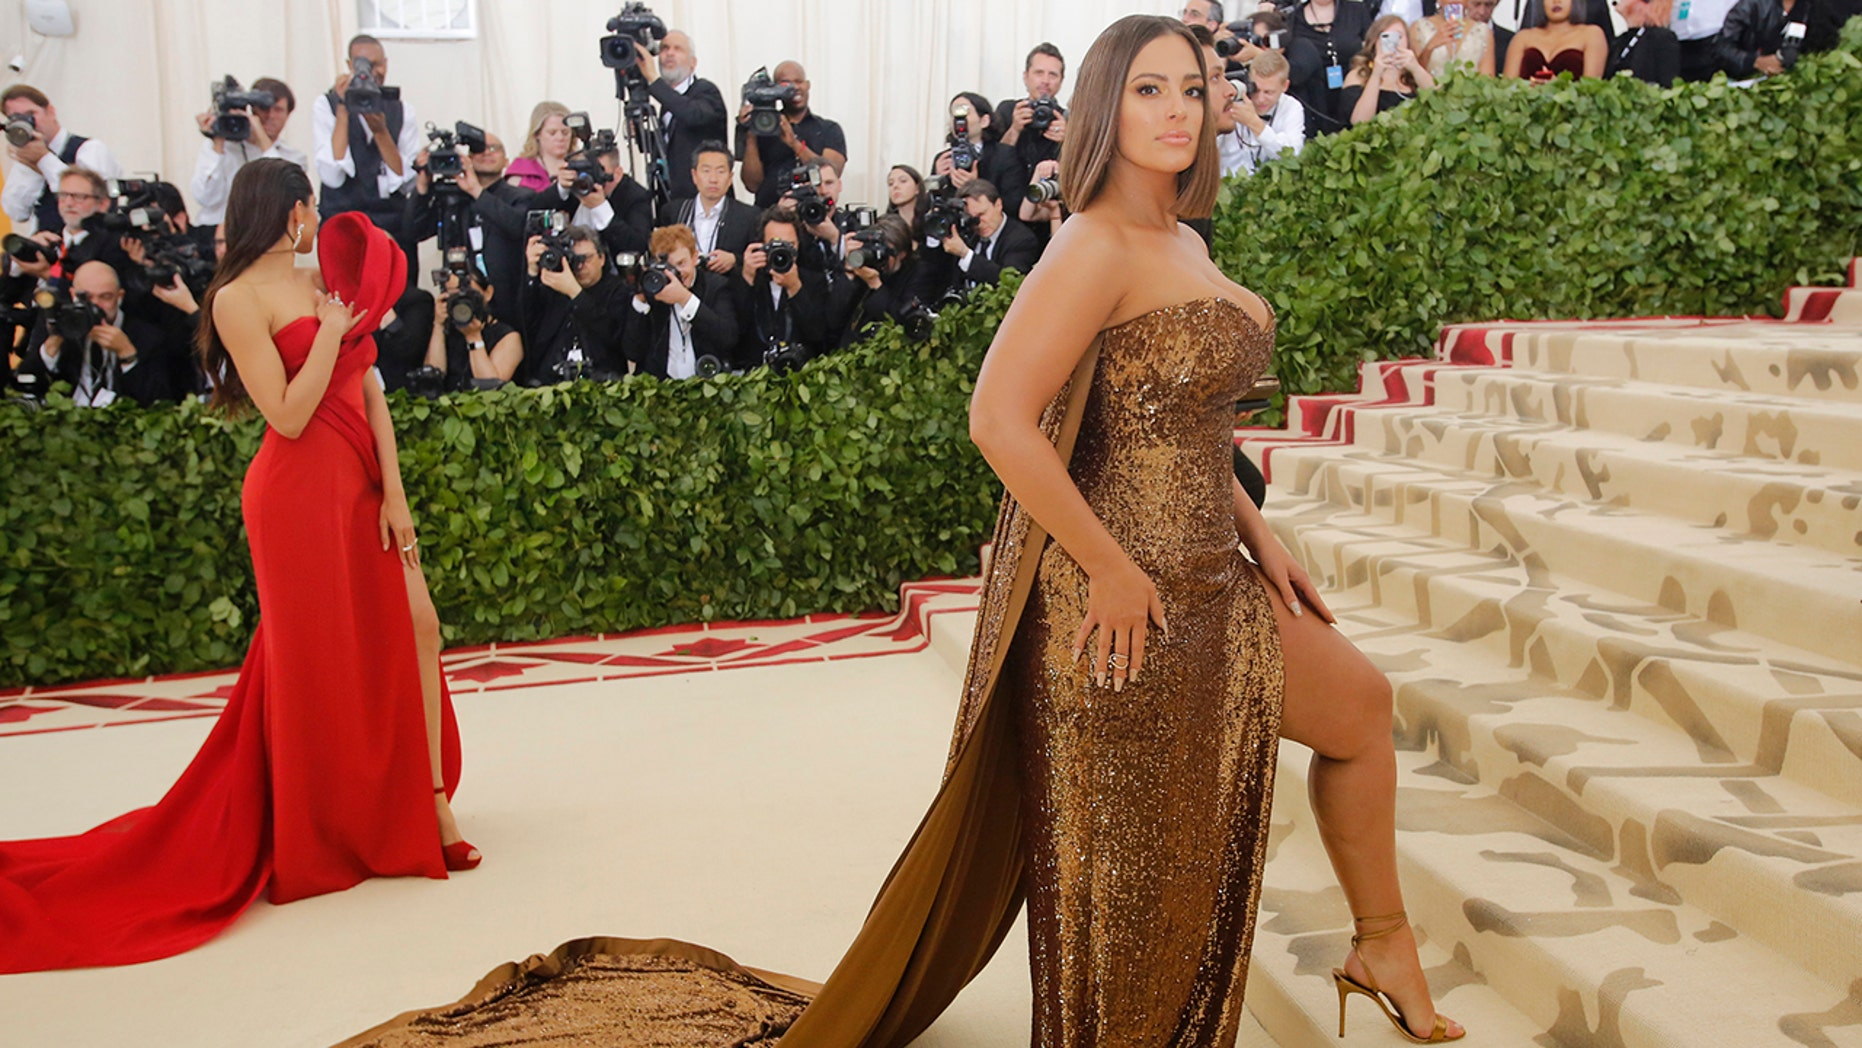 Ashley Graham shared a beauty trick on Instagram Sunday that dermatologists are warning against.